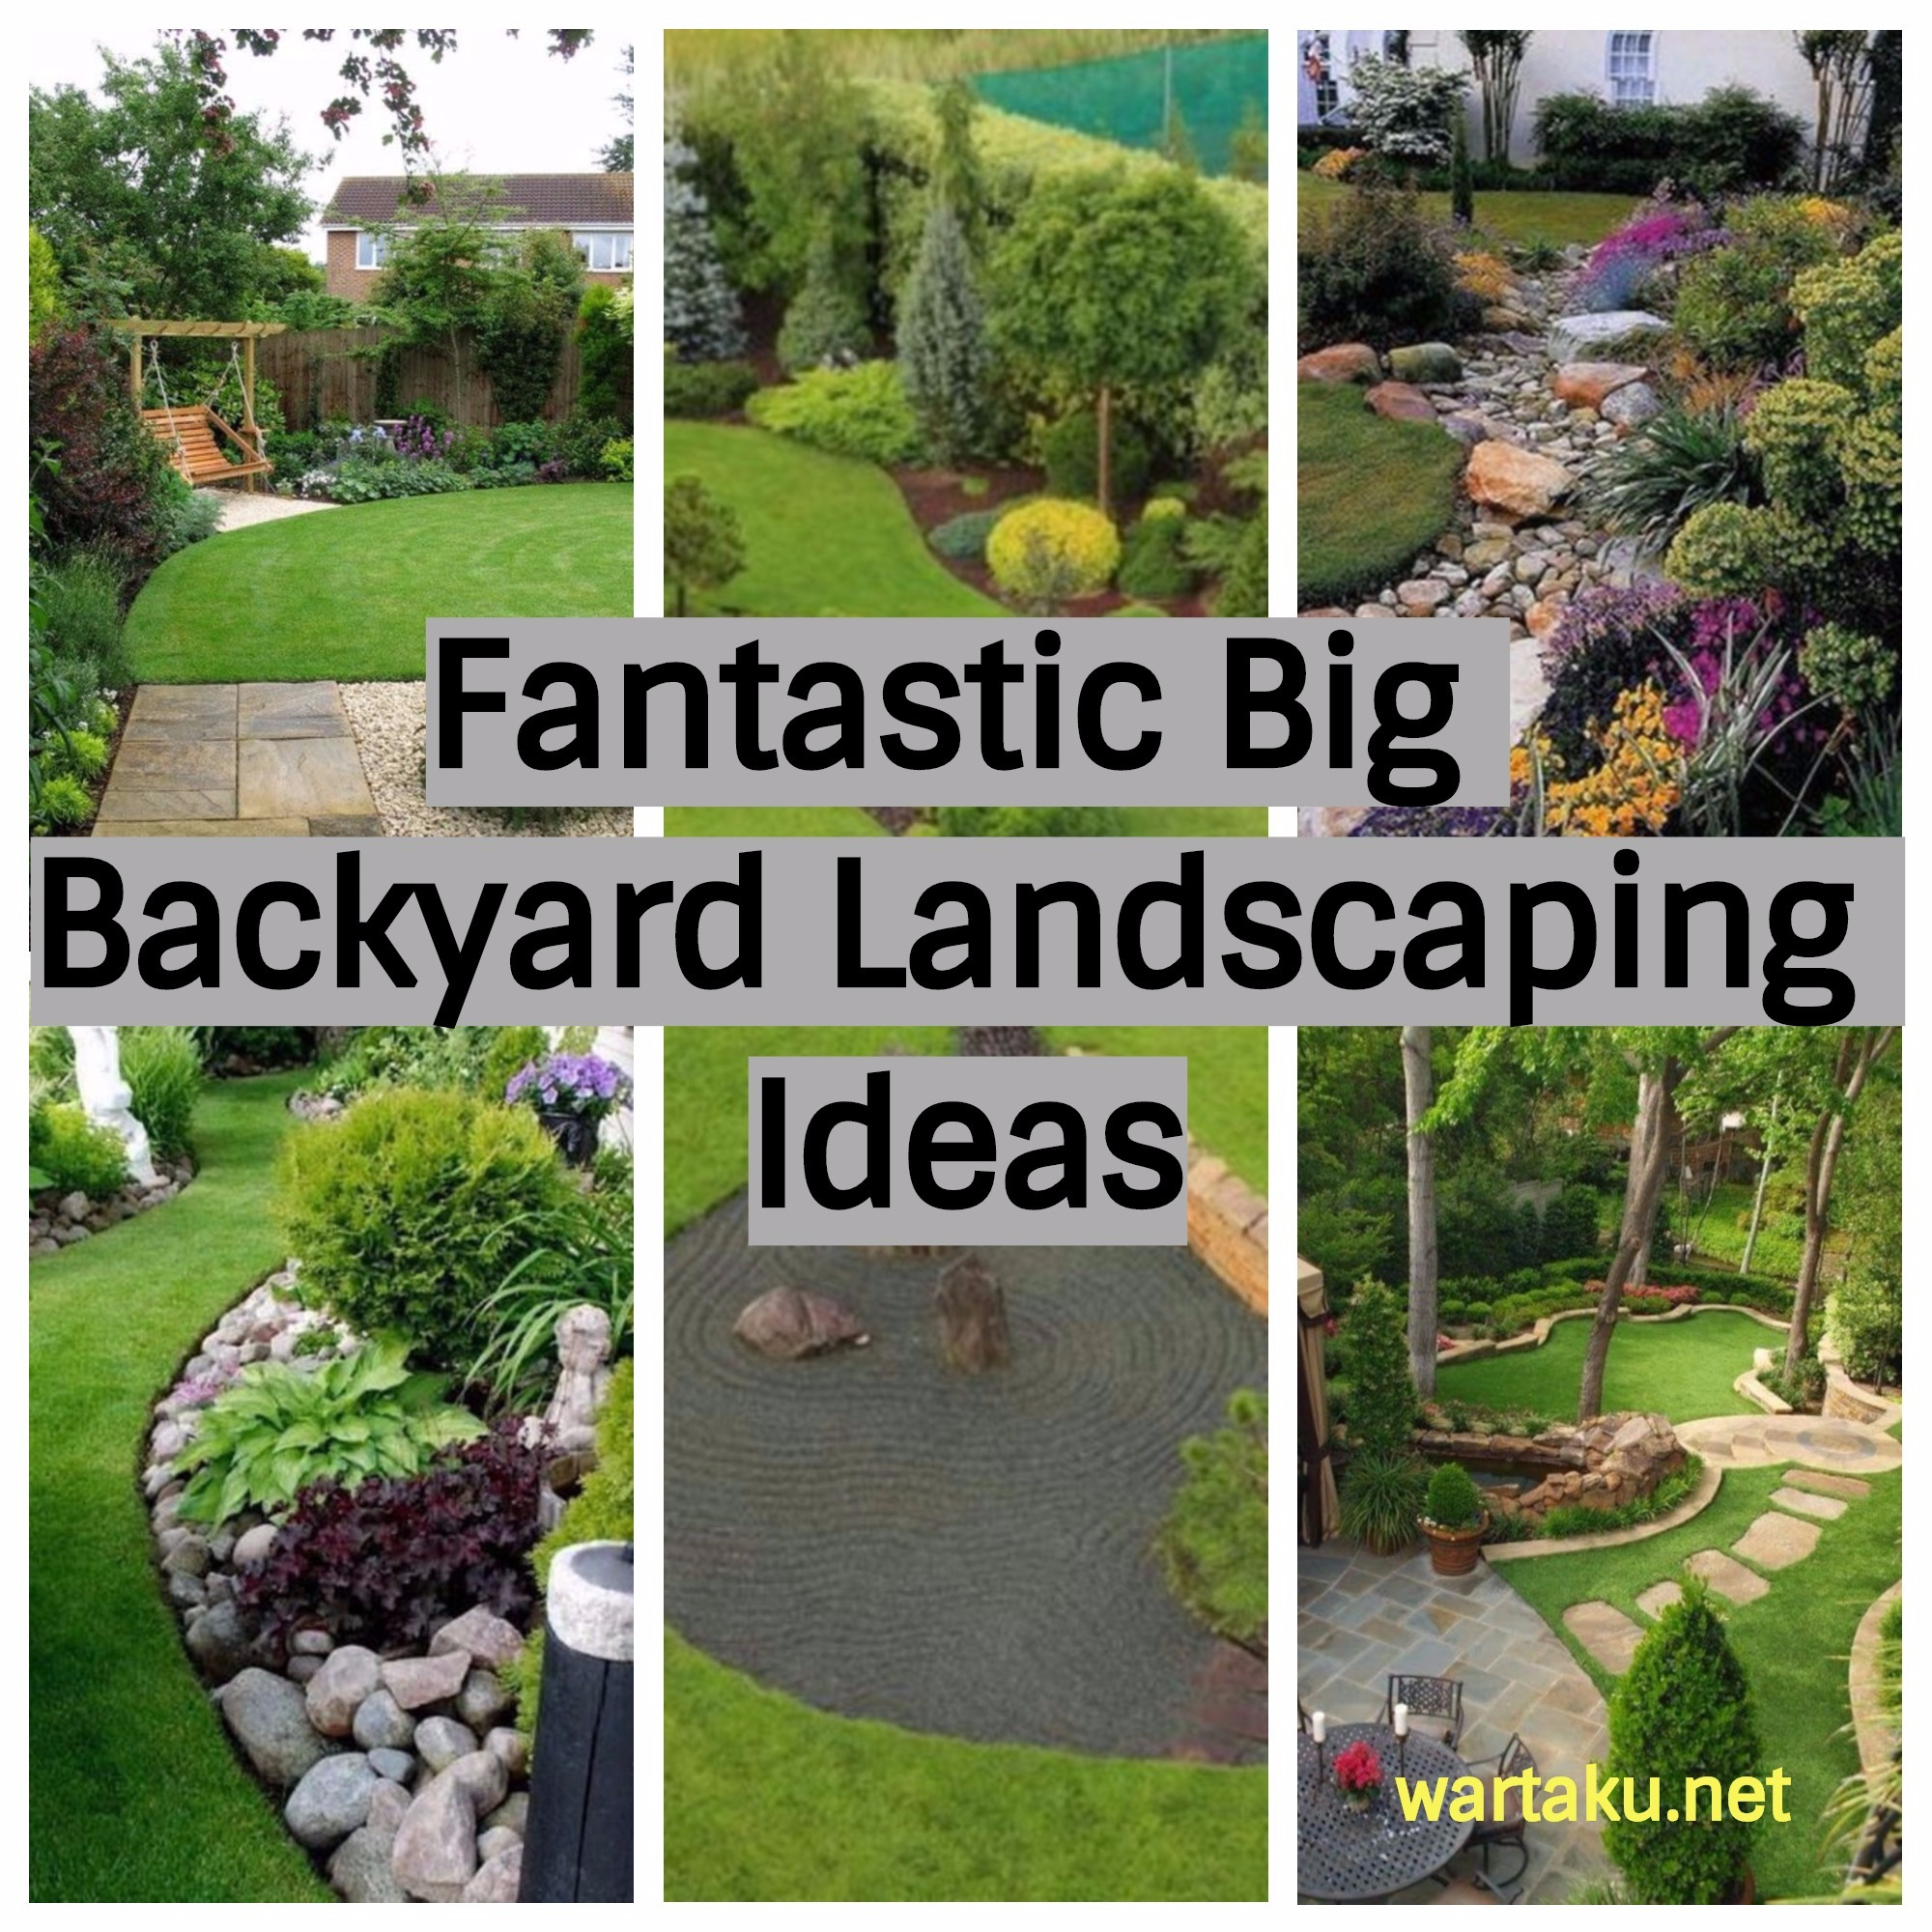 17 Fantastic Big Backyard Landscaping Ideas Wartaku with Large Backyard Ideas